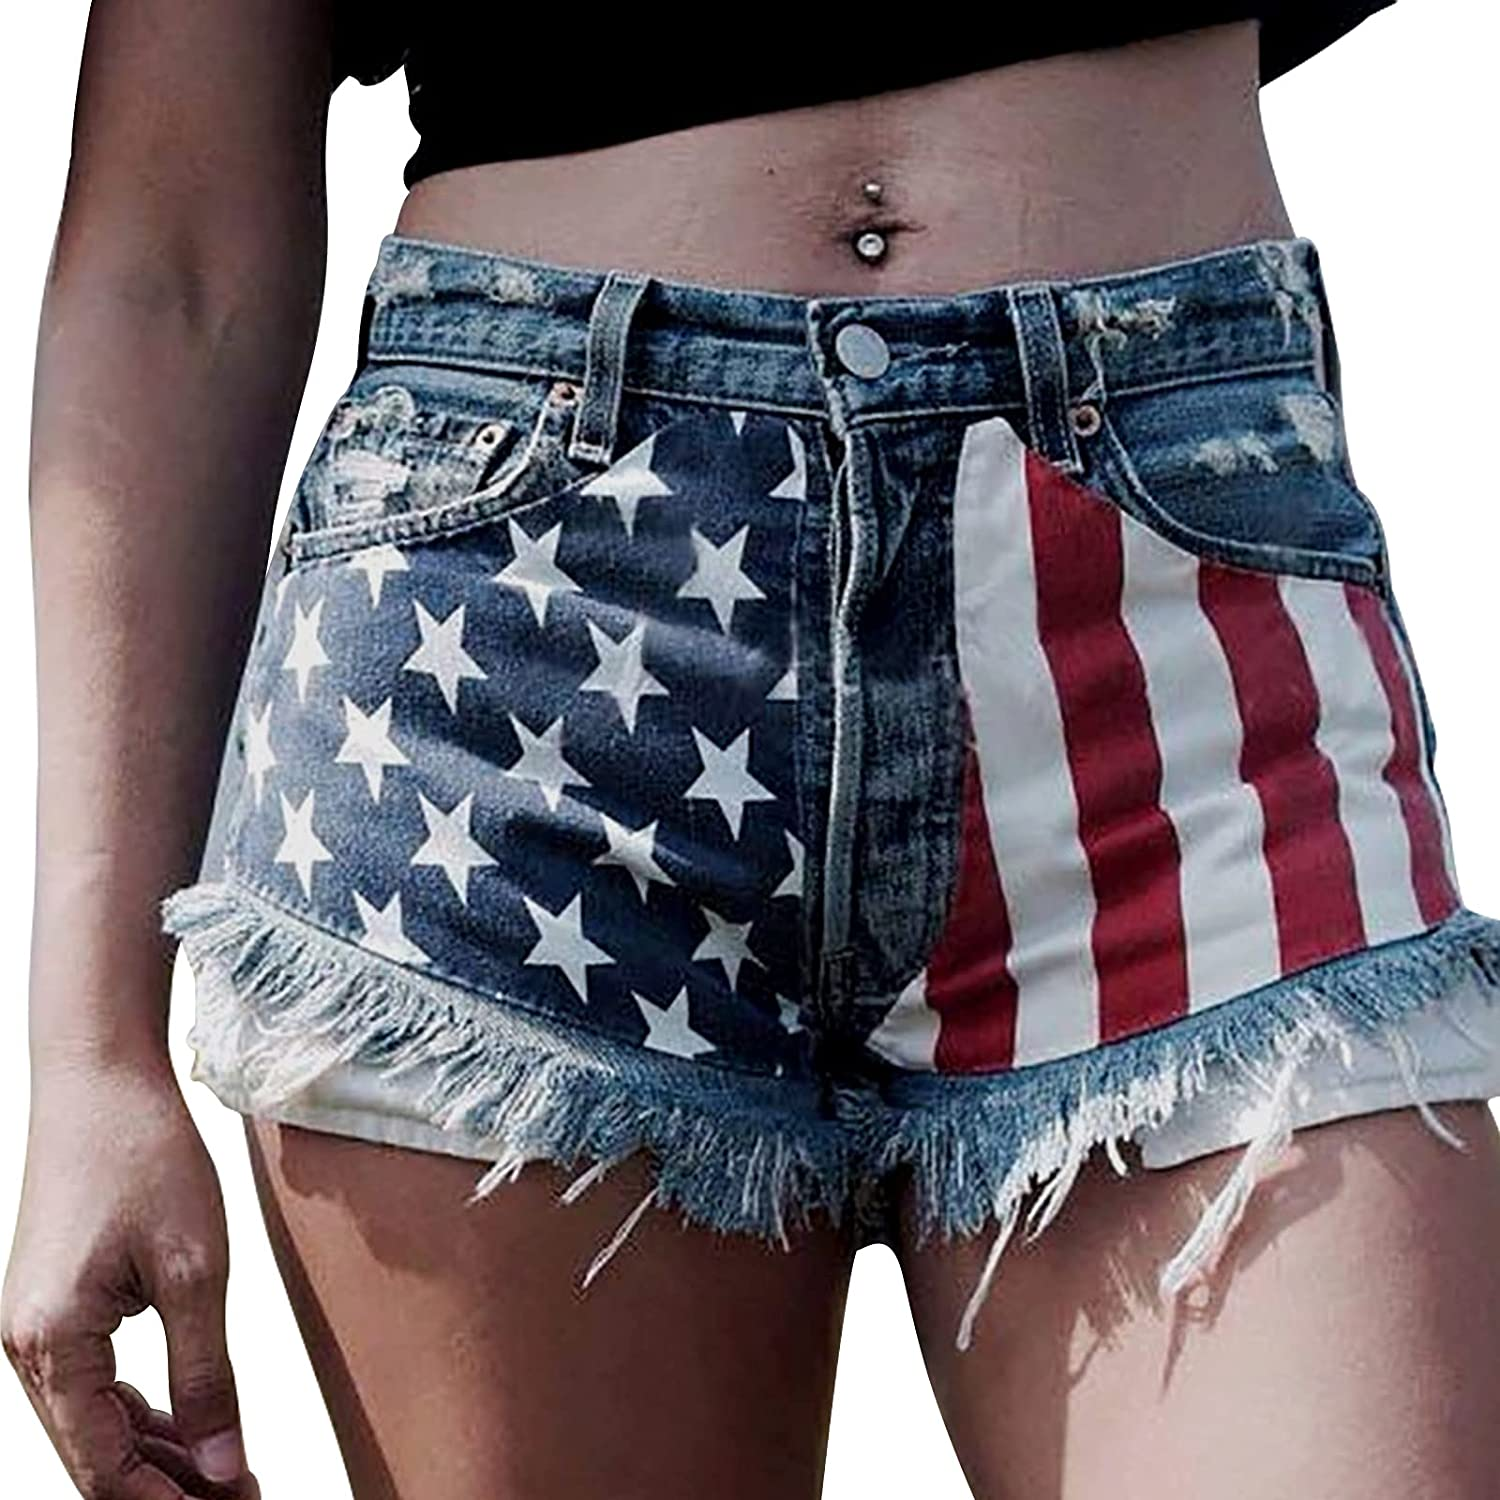 Women's Casual Jean Shorts High Waisted Cuffed Rolled Hem Patchwork Ripped Denim Shorts Mini Hot Pants with Pockets